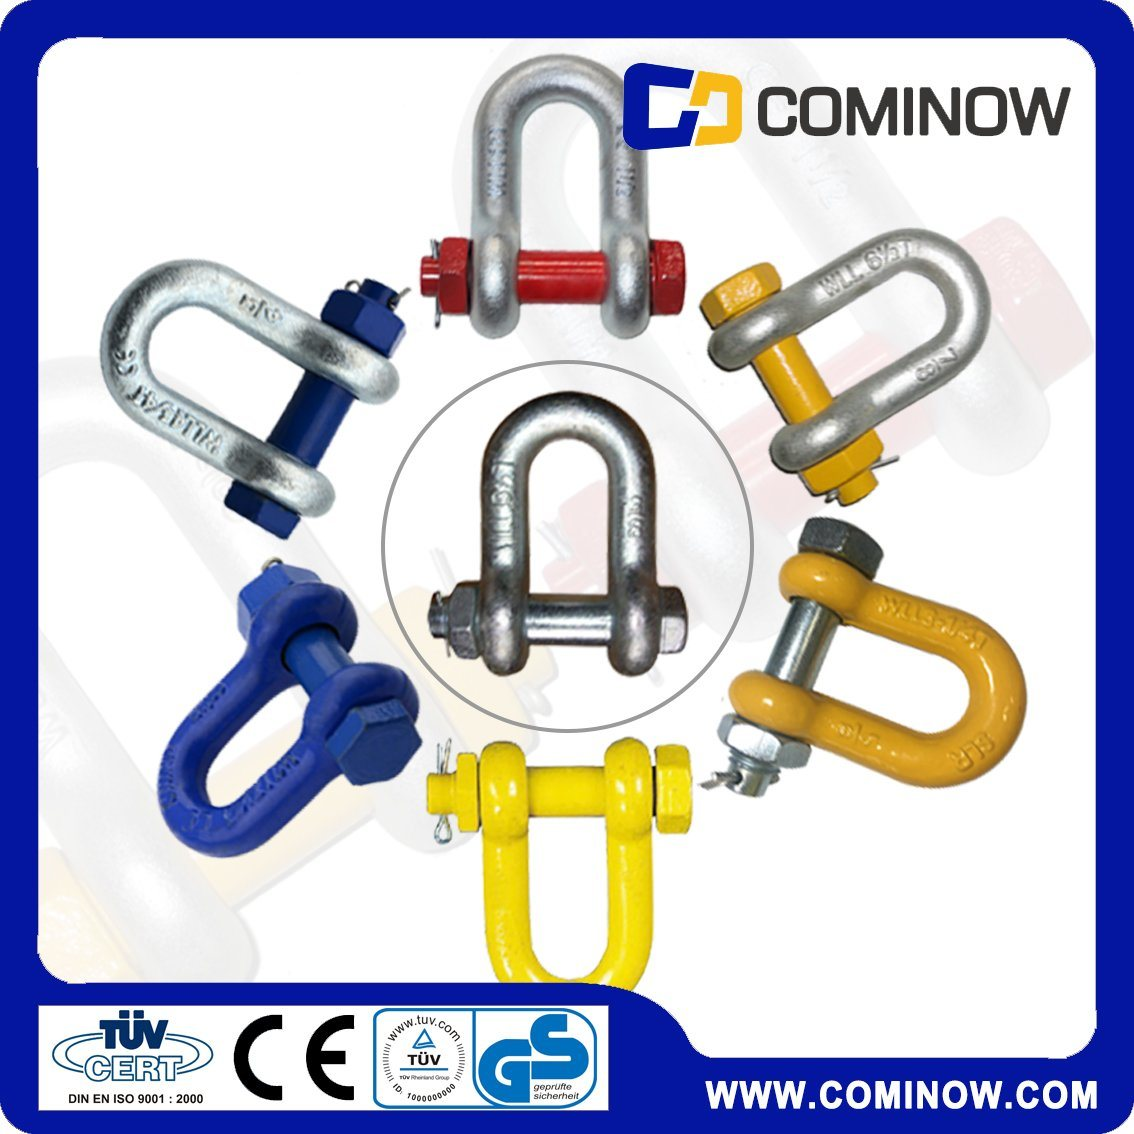 G2150 Us Type Drop Forged Chain Shackle with Safety Bolt and Nut / Bolt Type Dee Shackle